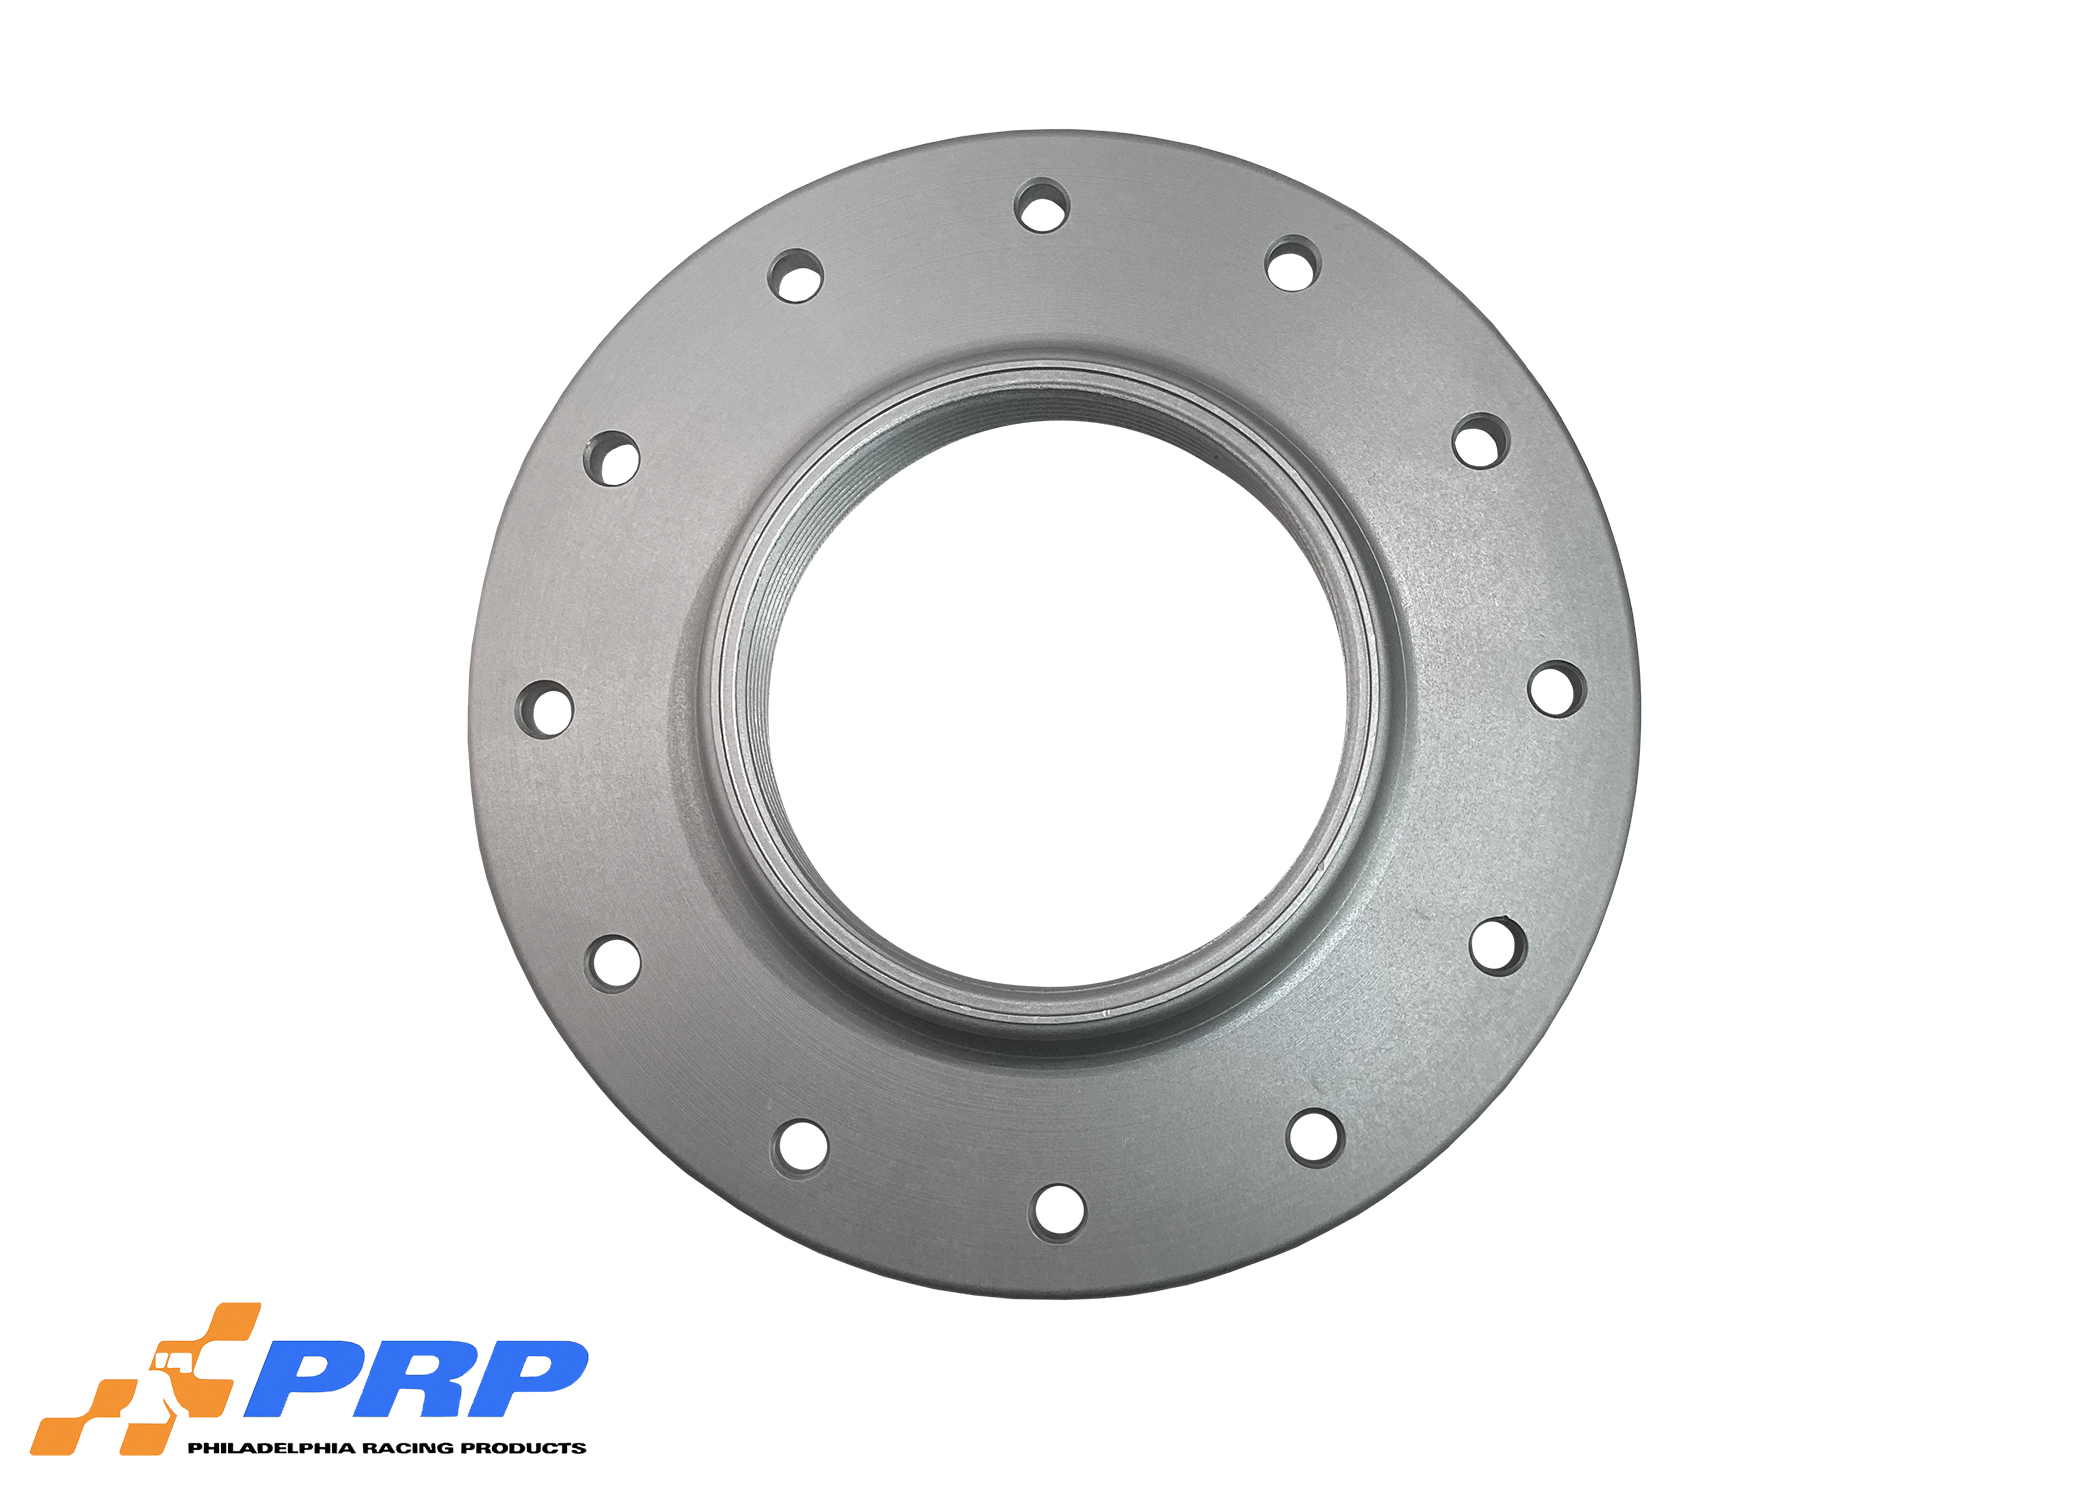 Clear Anodized 12 Bolt Fuel Cell Bung made by PRP Racing Products